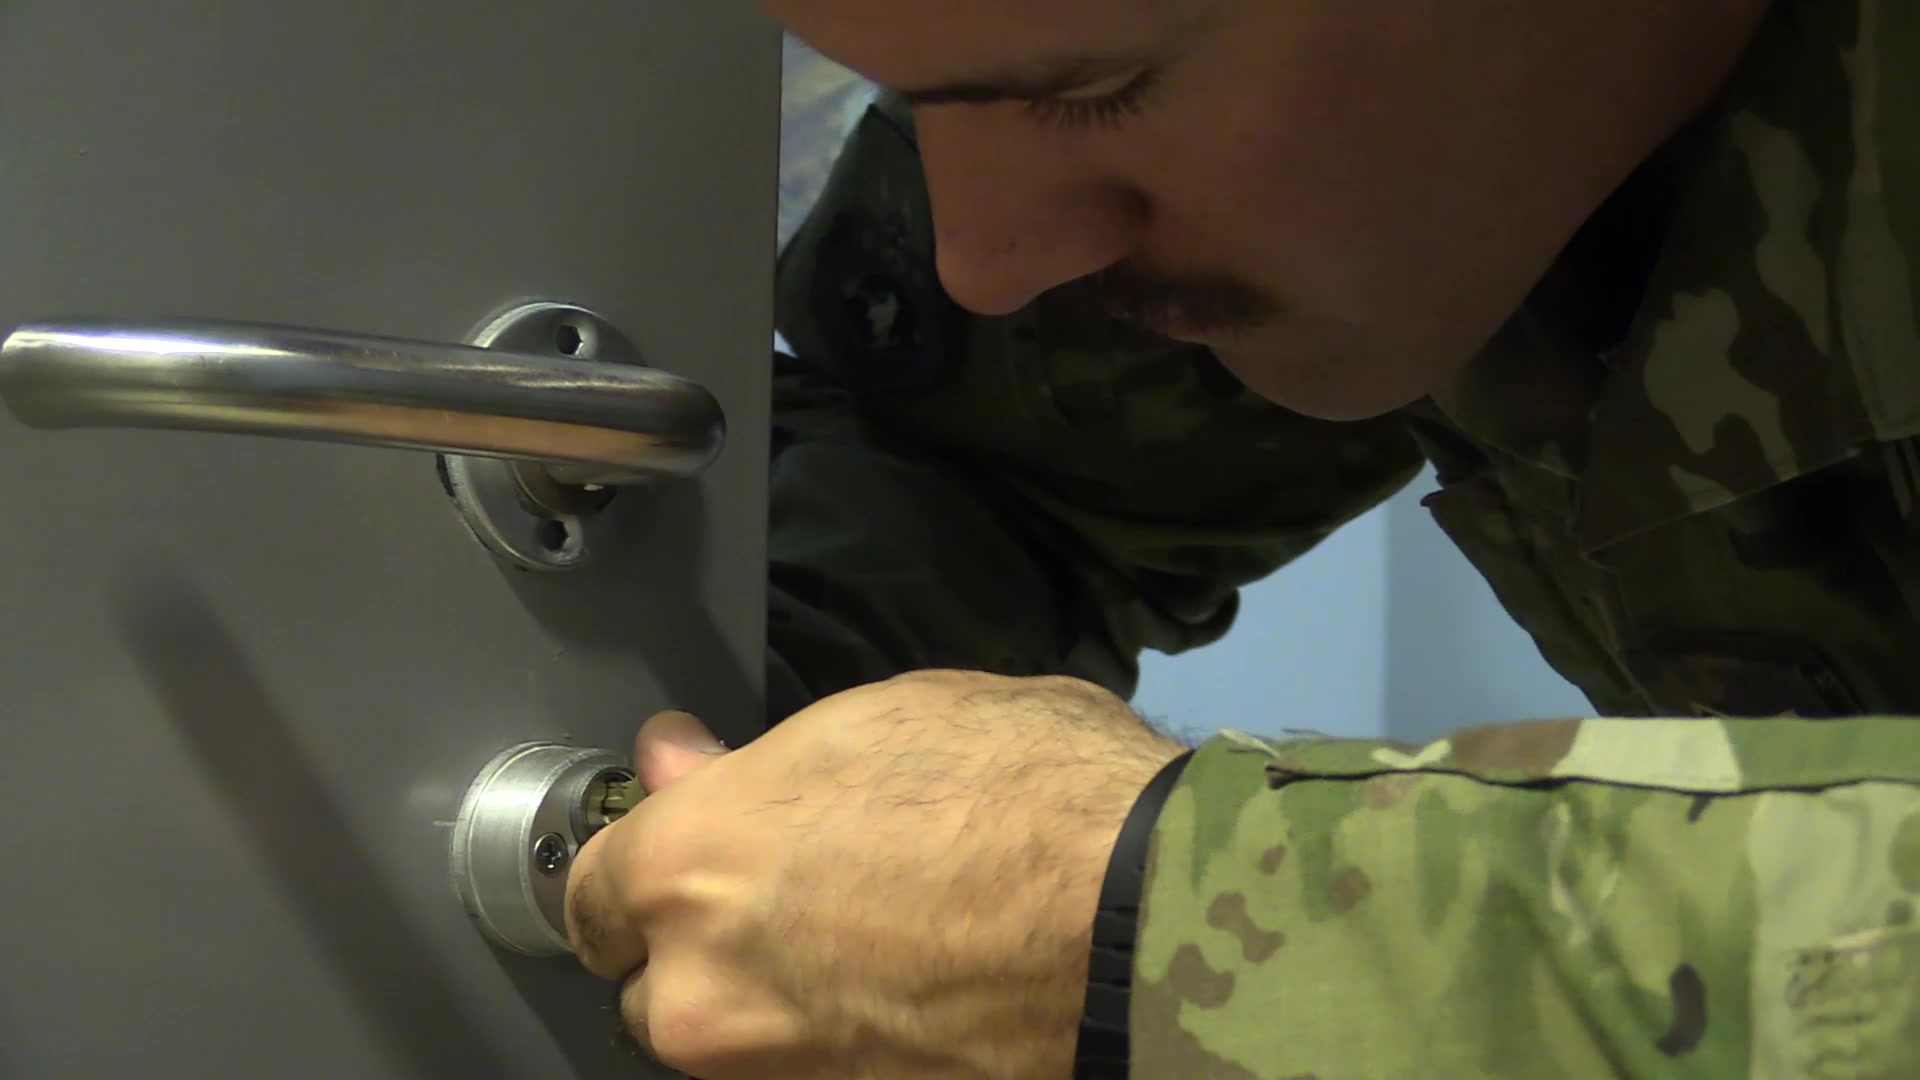 Airmen with the 379th Expeditionary Civil Engineering Squadron, Structures Shop, specialize in a variety of jobs including locksmithing. These airmen maintain and install locks across Al Udeid Air Base, essentially; Securing the Mission.